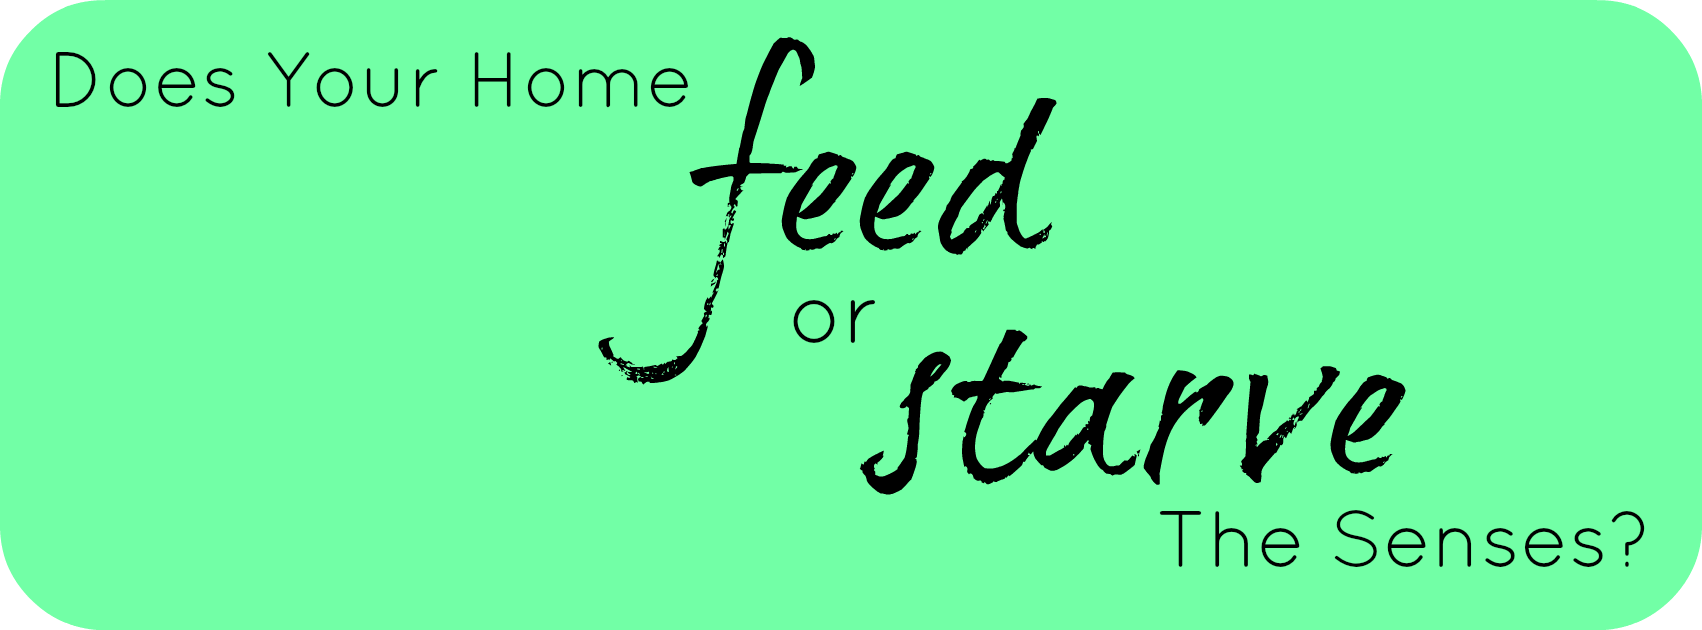 Does Your Home Feed or Starve the Senses?